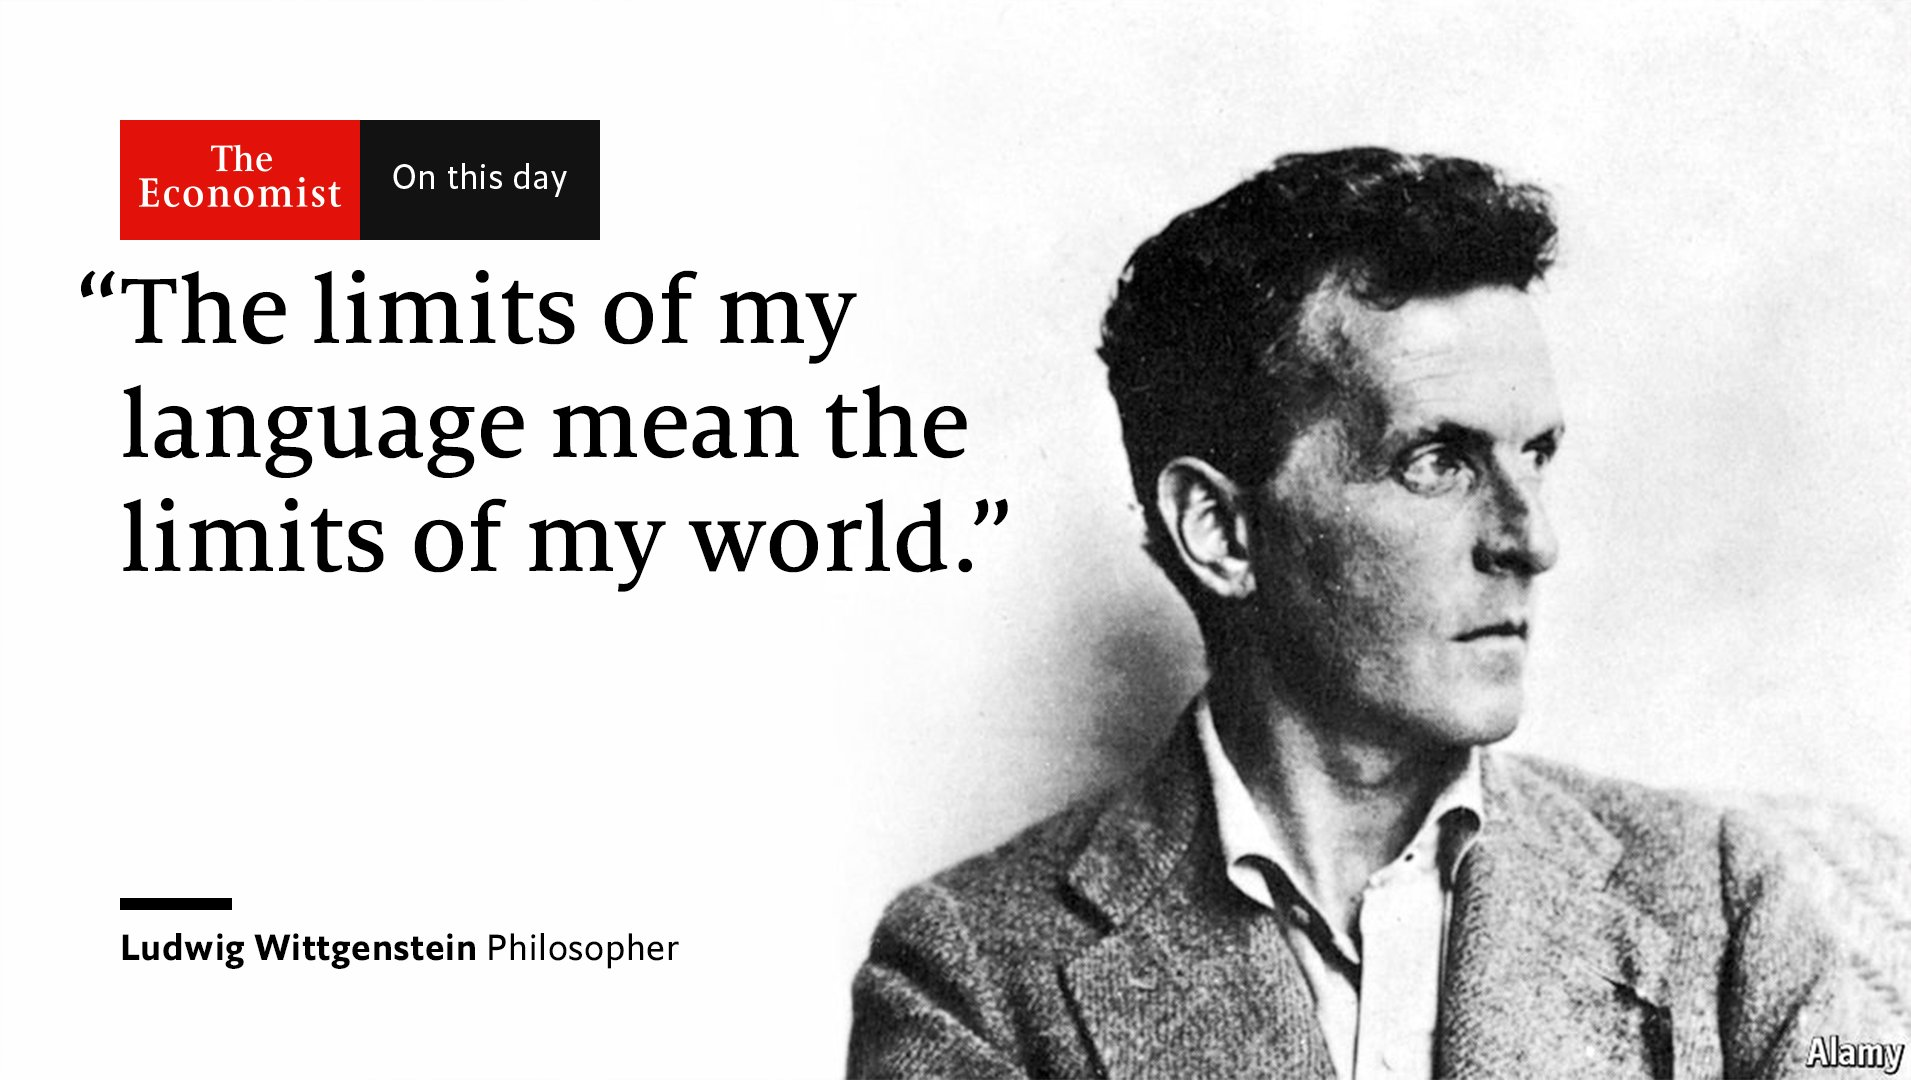 ludwig wittgenstein on language and meaning